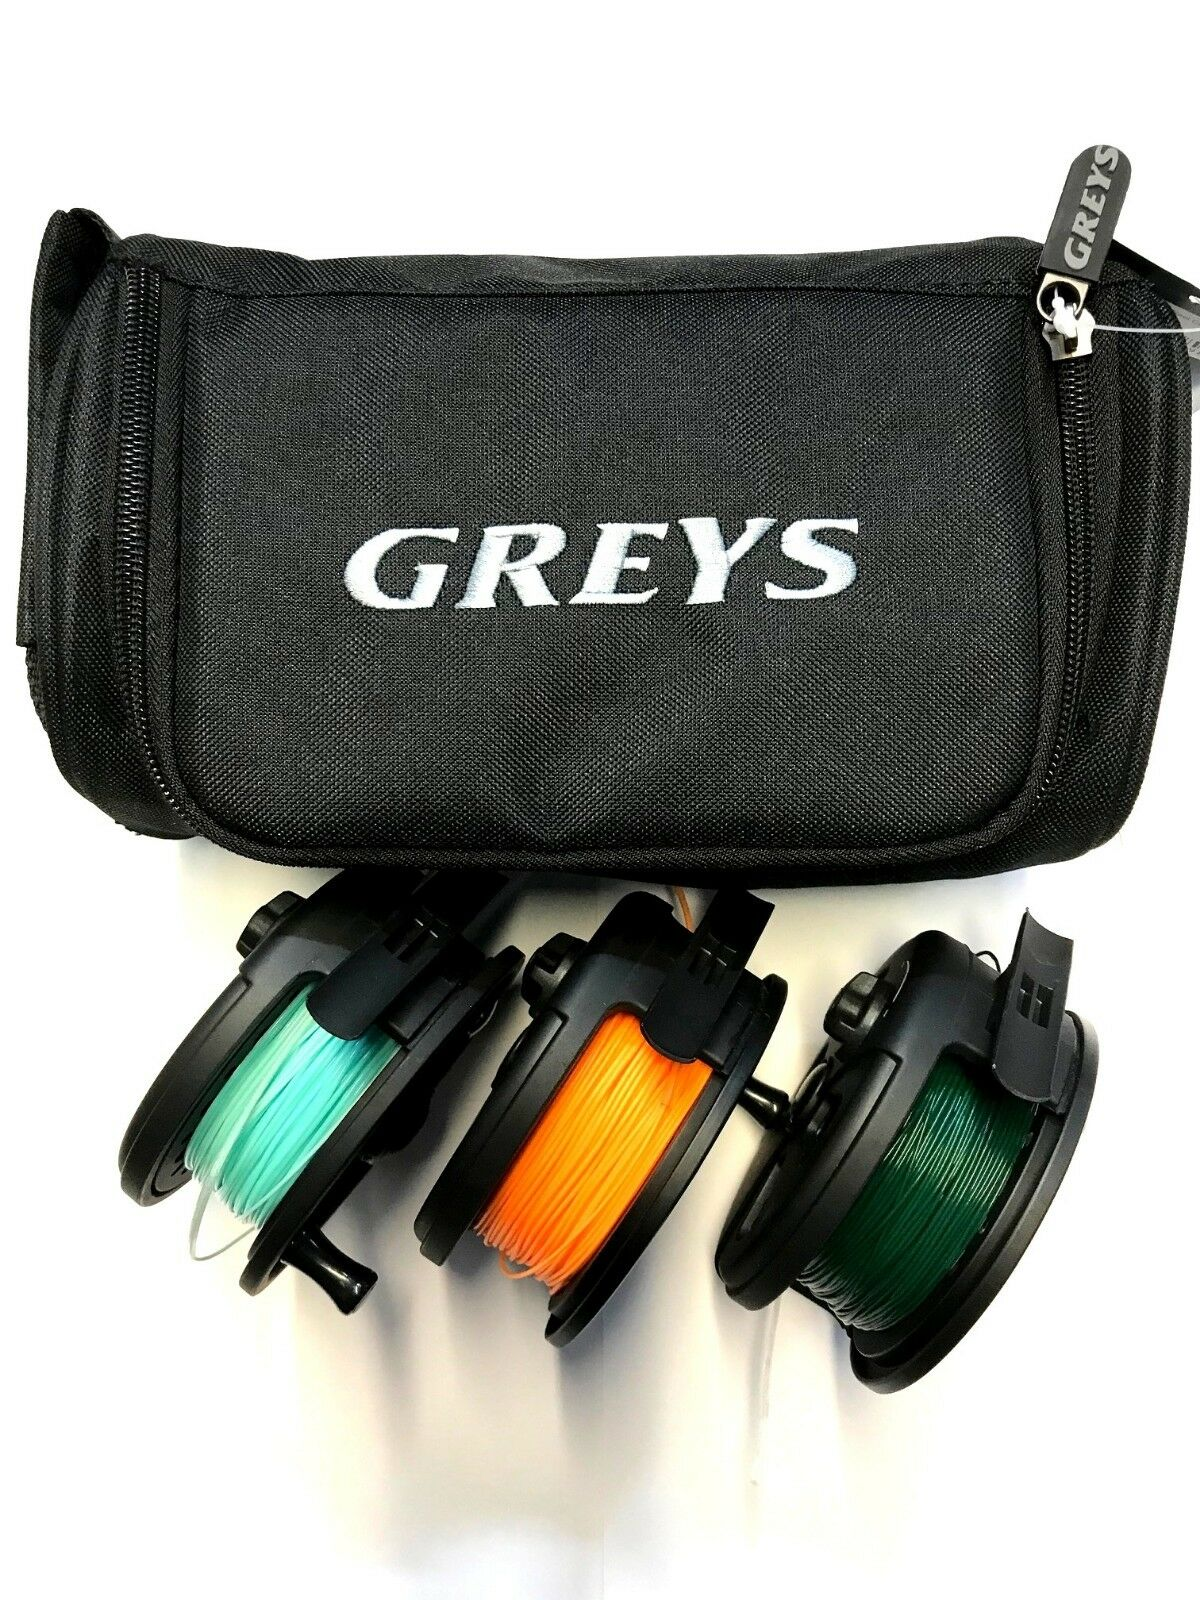 3 x Cobra Fly Fishing Reel & 3 Lines Fitted Float  Inter Sink 7 Greys Reel case